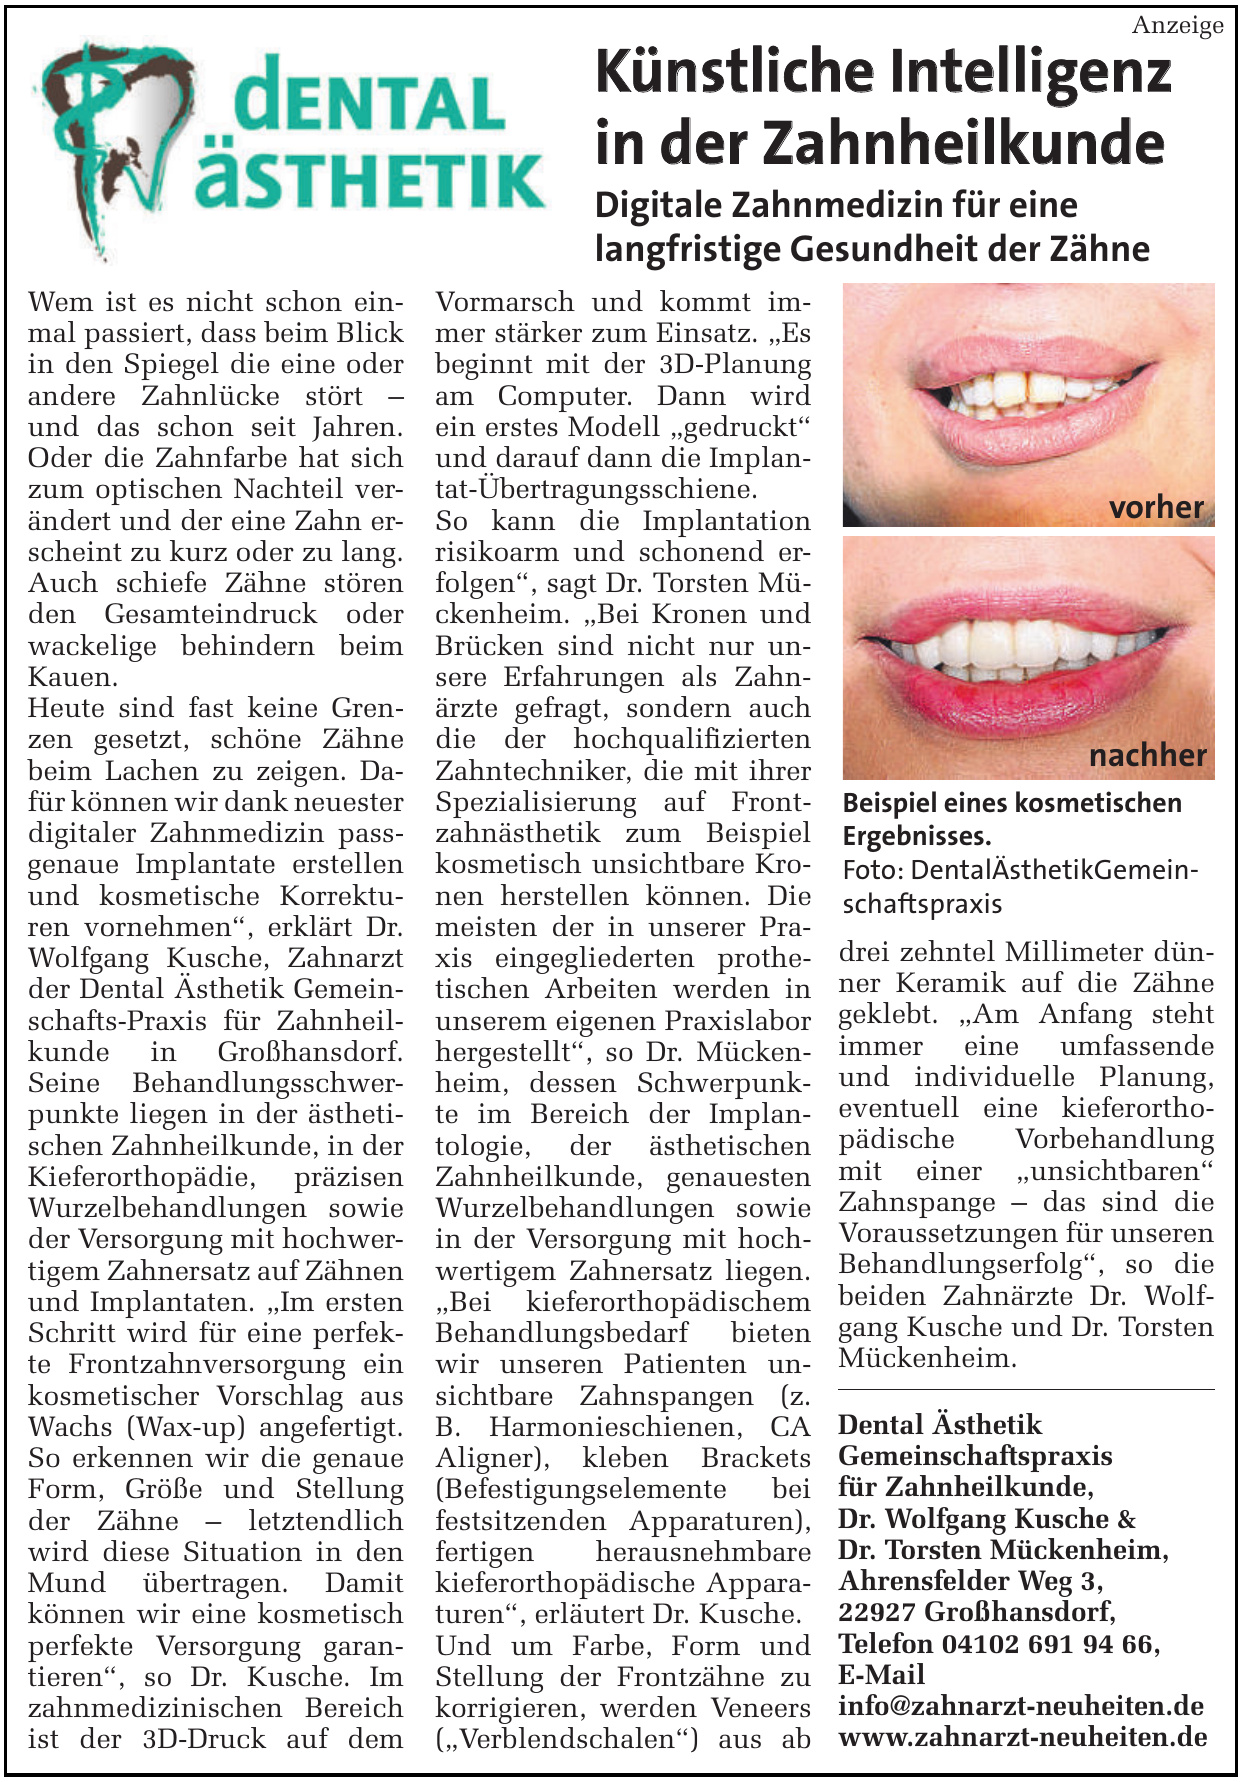 Dental-Ästhetik